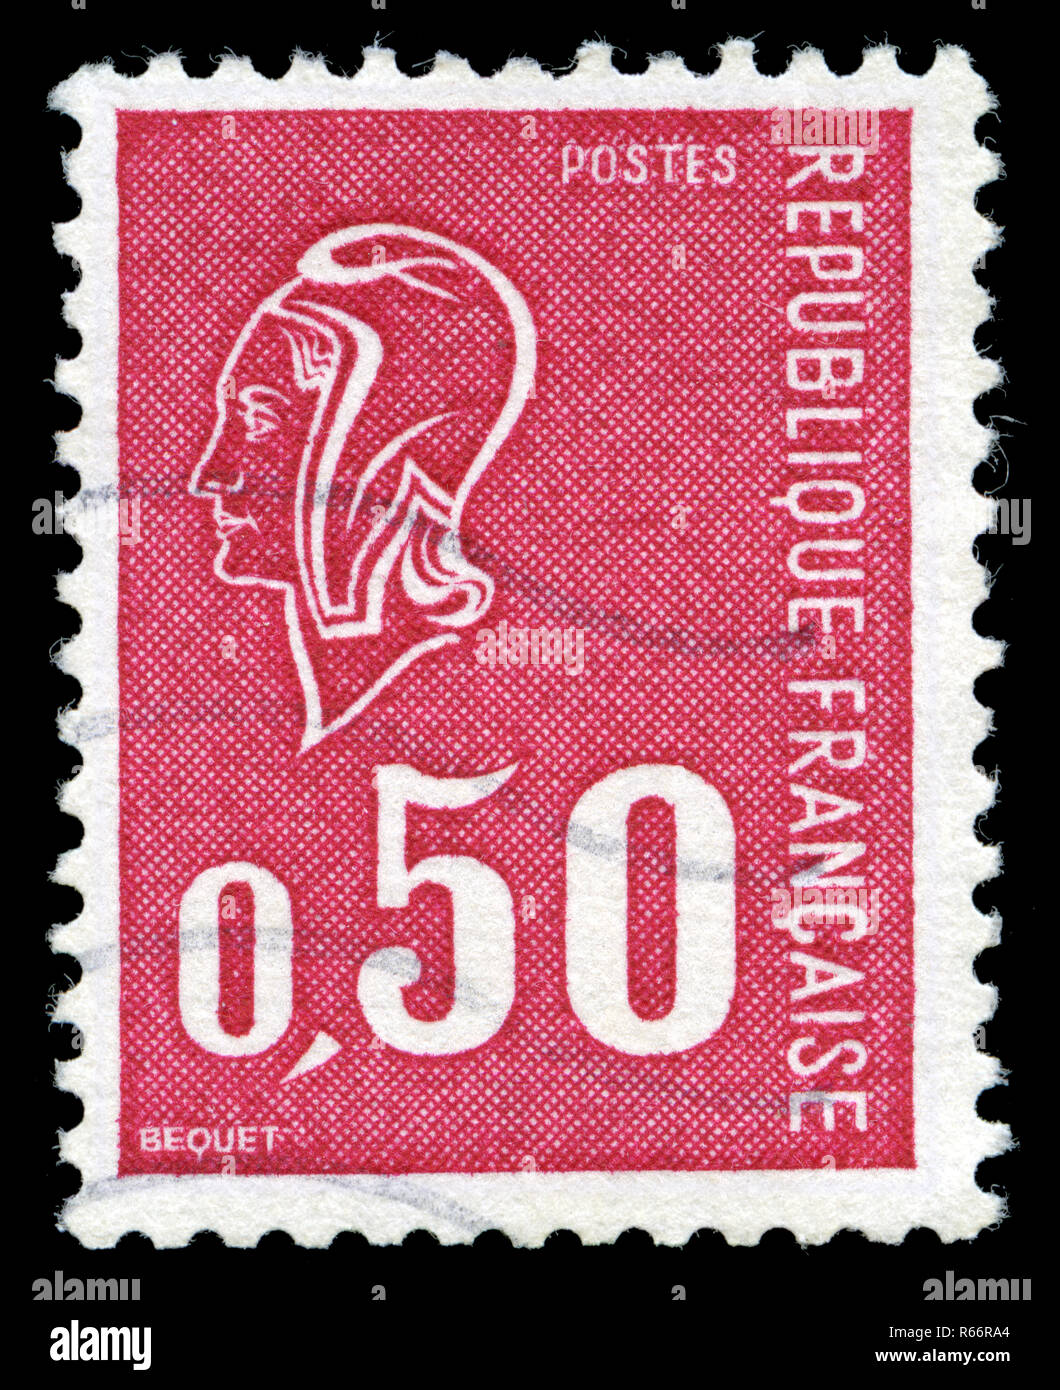 Postage stamp from France in the Marianne (Béquet) series issued in 1971 - Stock Image